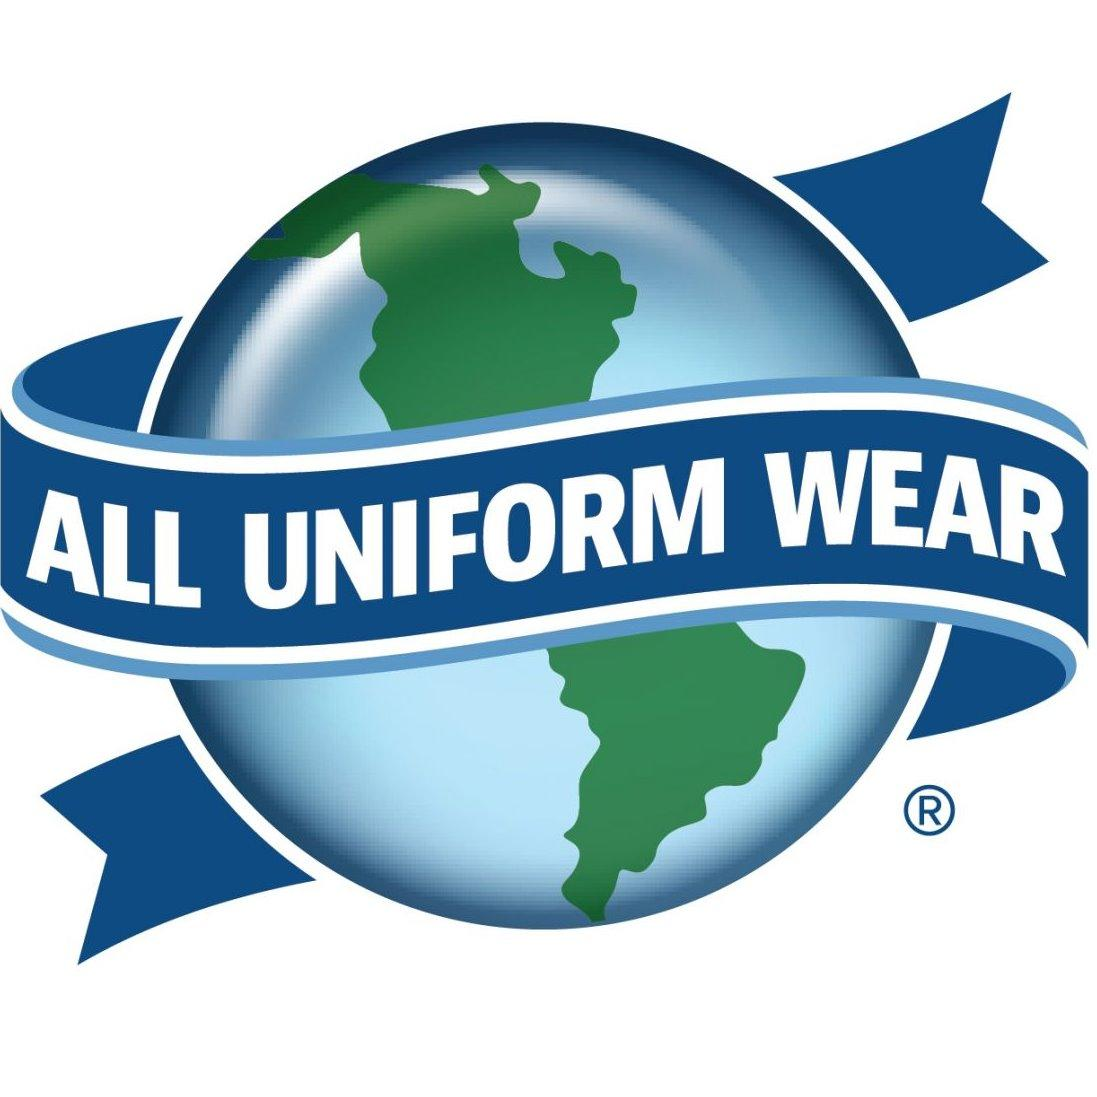 Uniform Store in TX San Antonio 78216 All Uniform Wear 7065 San Pedro Avenue  (210)417-4578